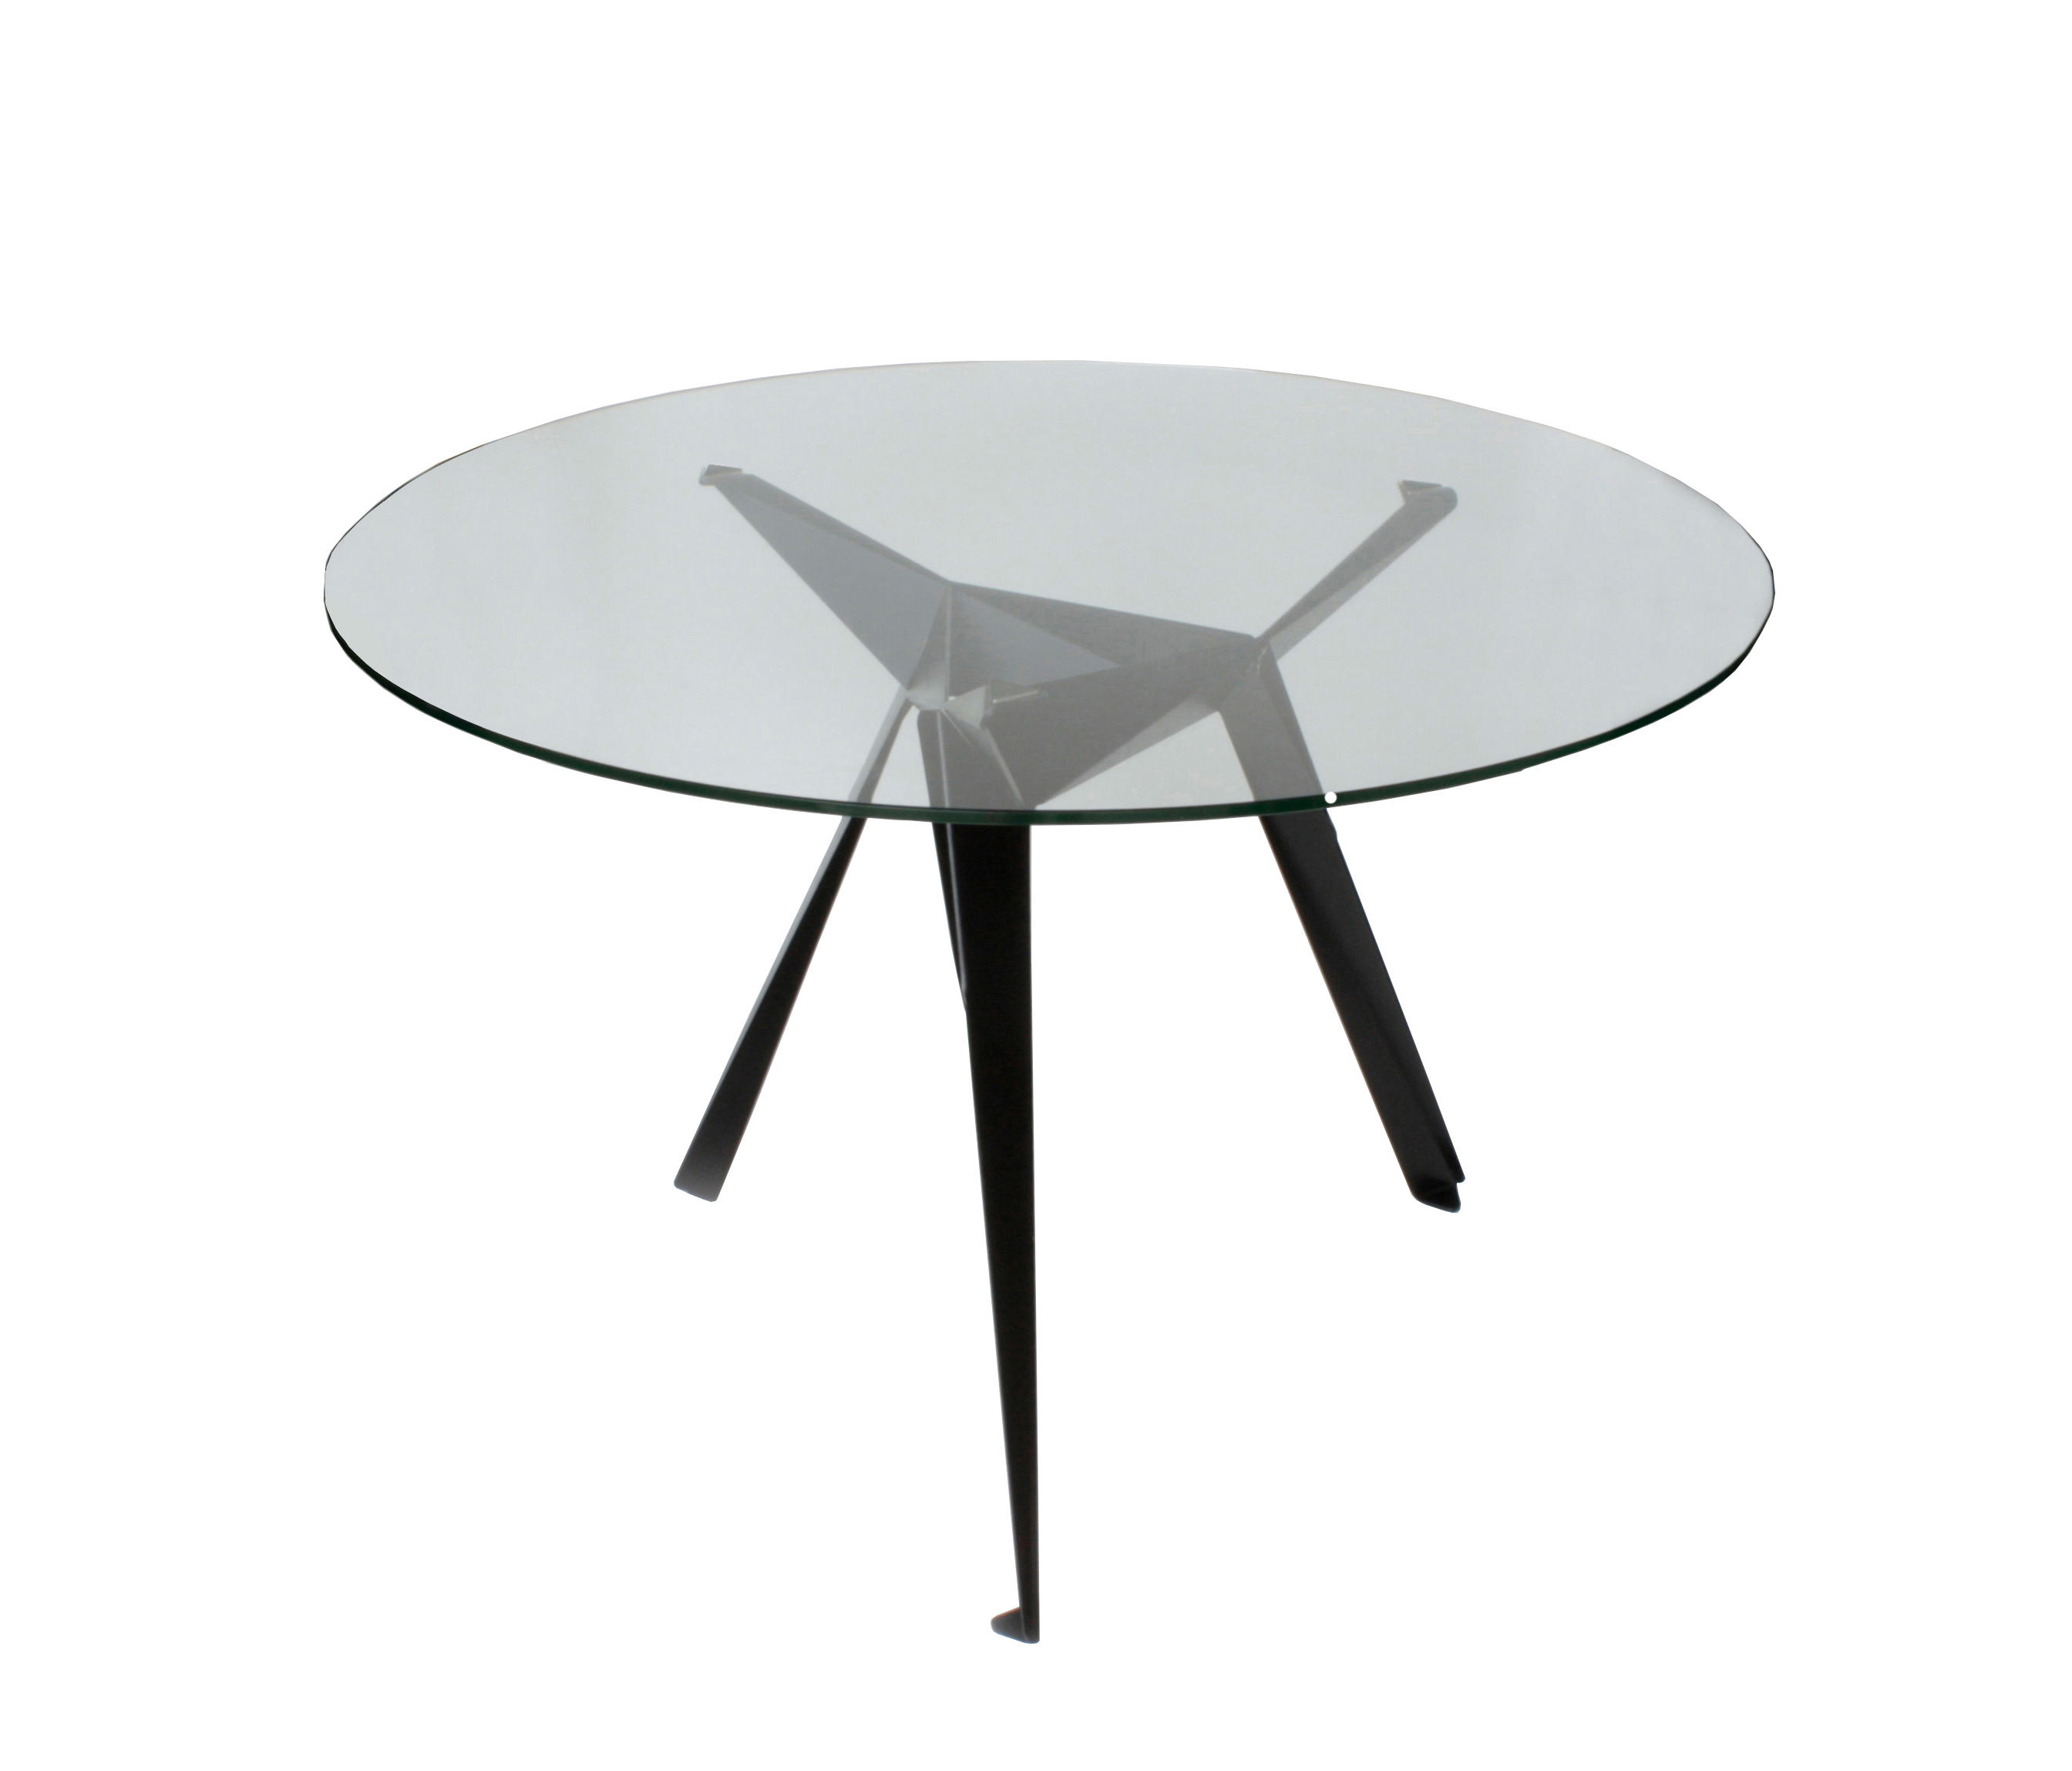 Origami Dining Table By Innermost | Dining Tables ...